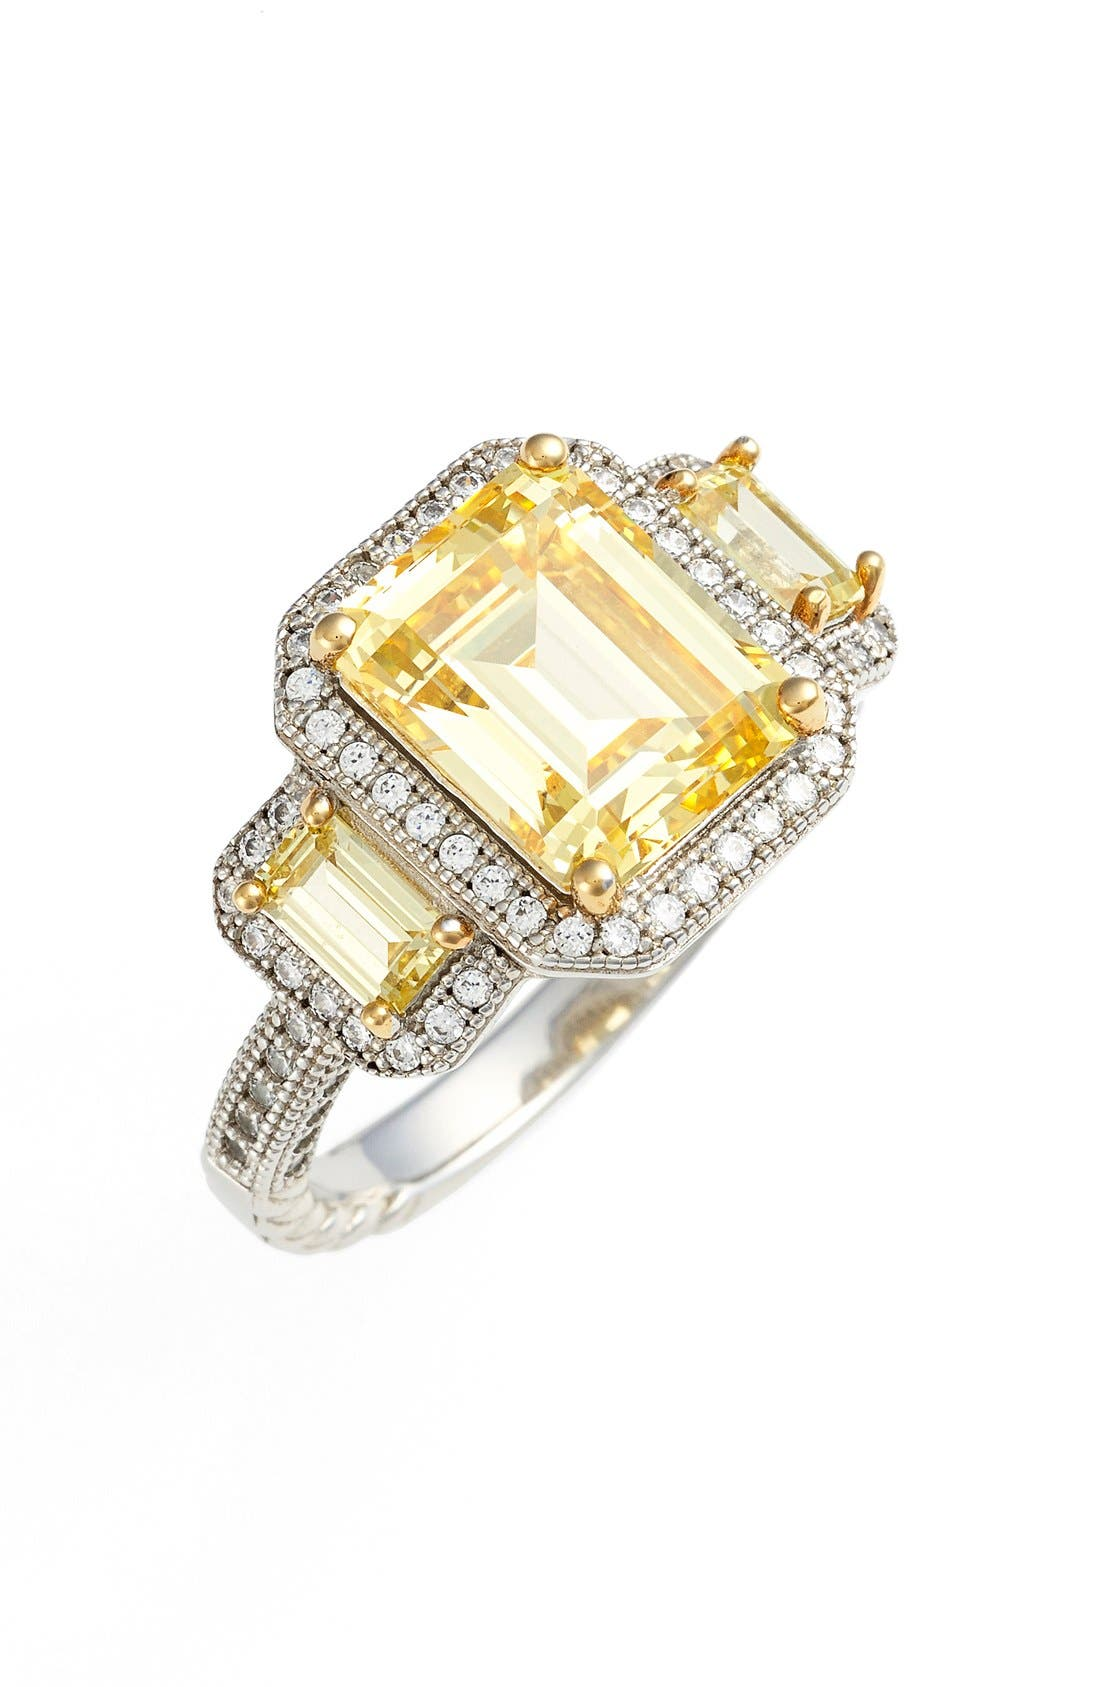 Alternate Image 1 Selected - Lafonn 'Lassaire' Yellow Three Stone Ring